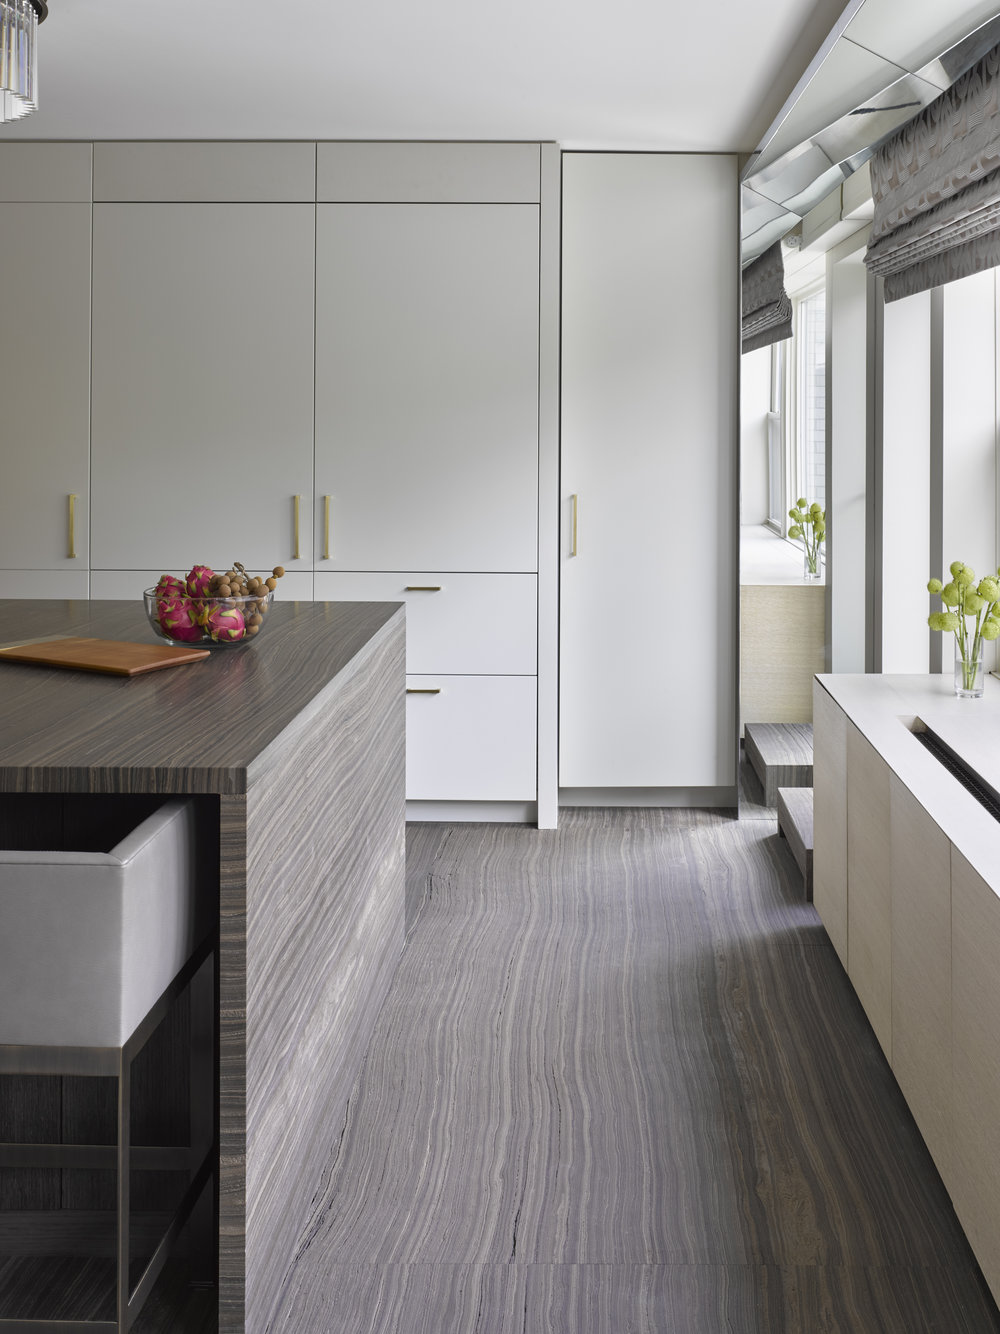 West 72nd Street Apartment Kitchen Island and Cabinet Details